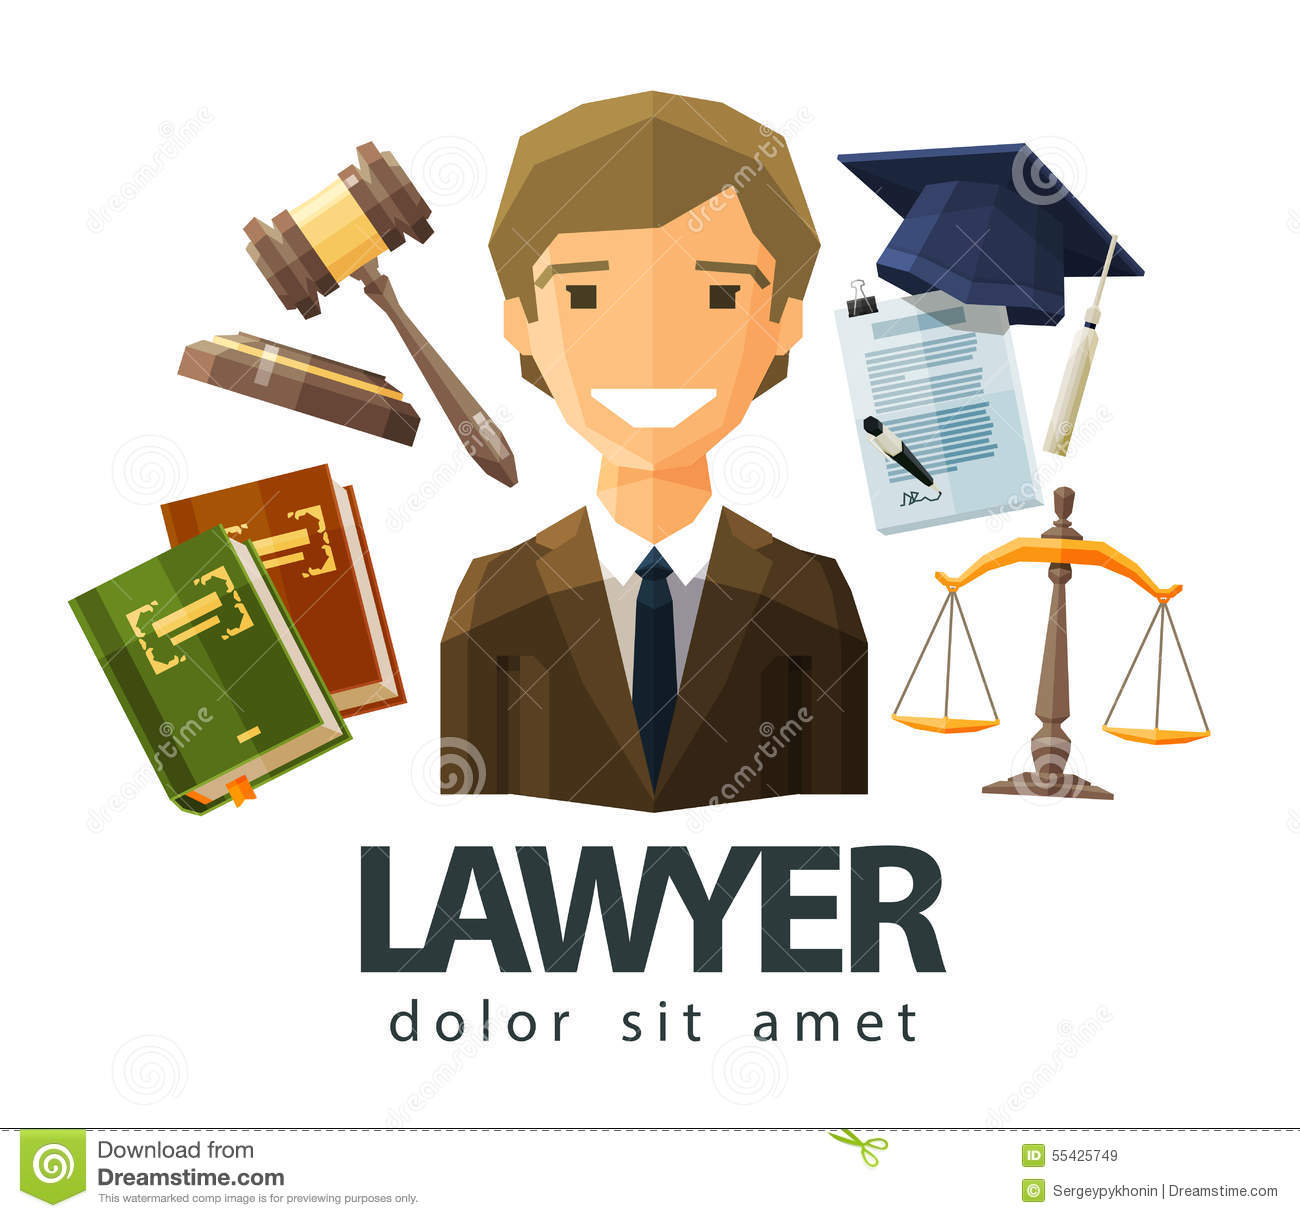 lawyer vector - photo #11